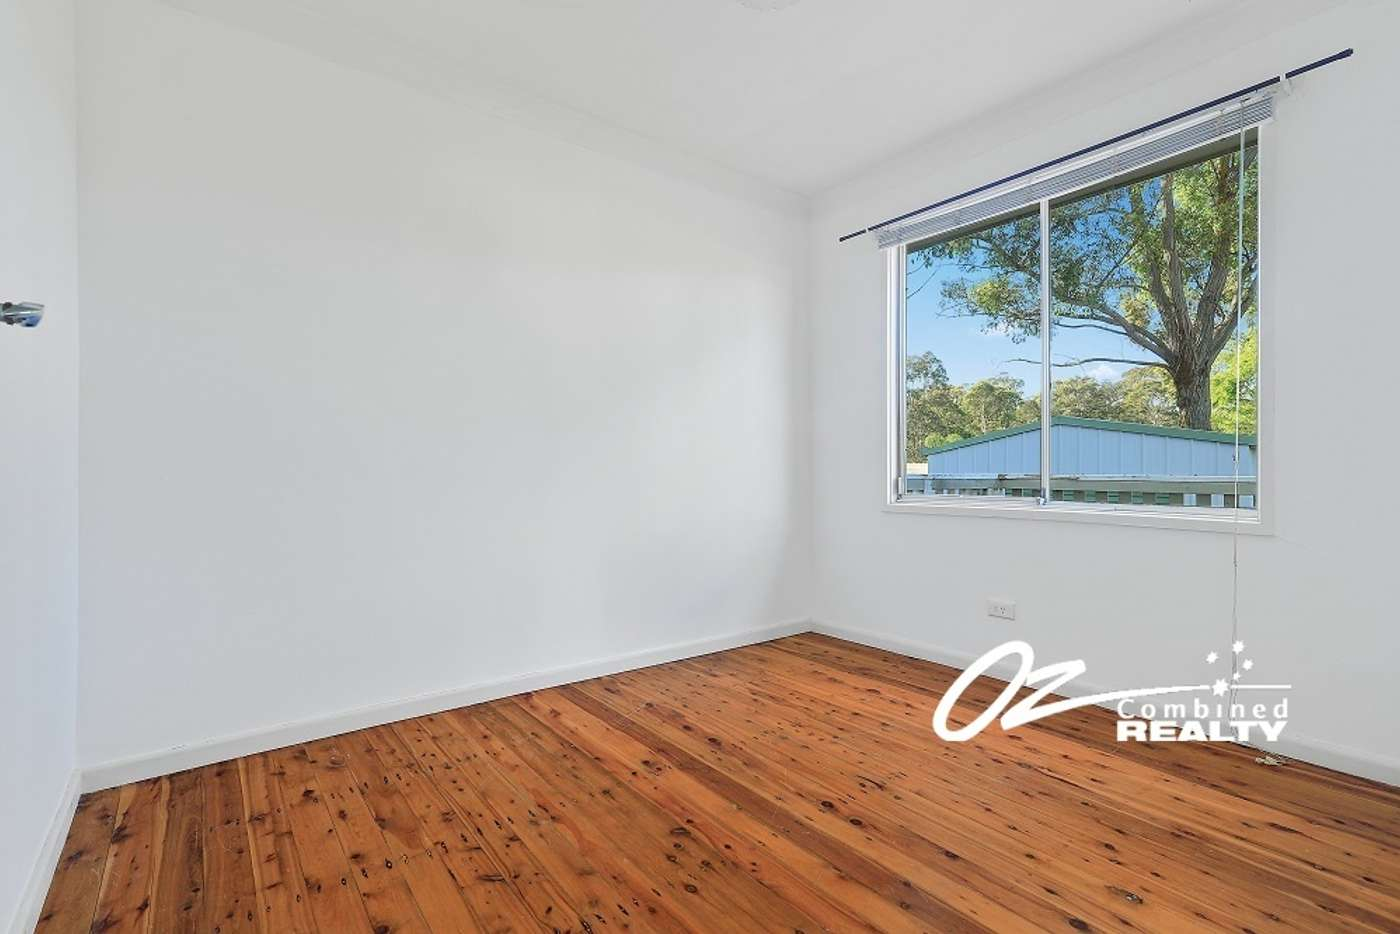 Fifth view of Homely house listing, 44 Fitzpatrick Street, Old Erowal Bay NSW 2540